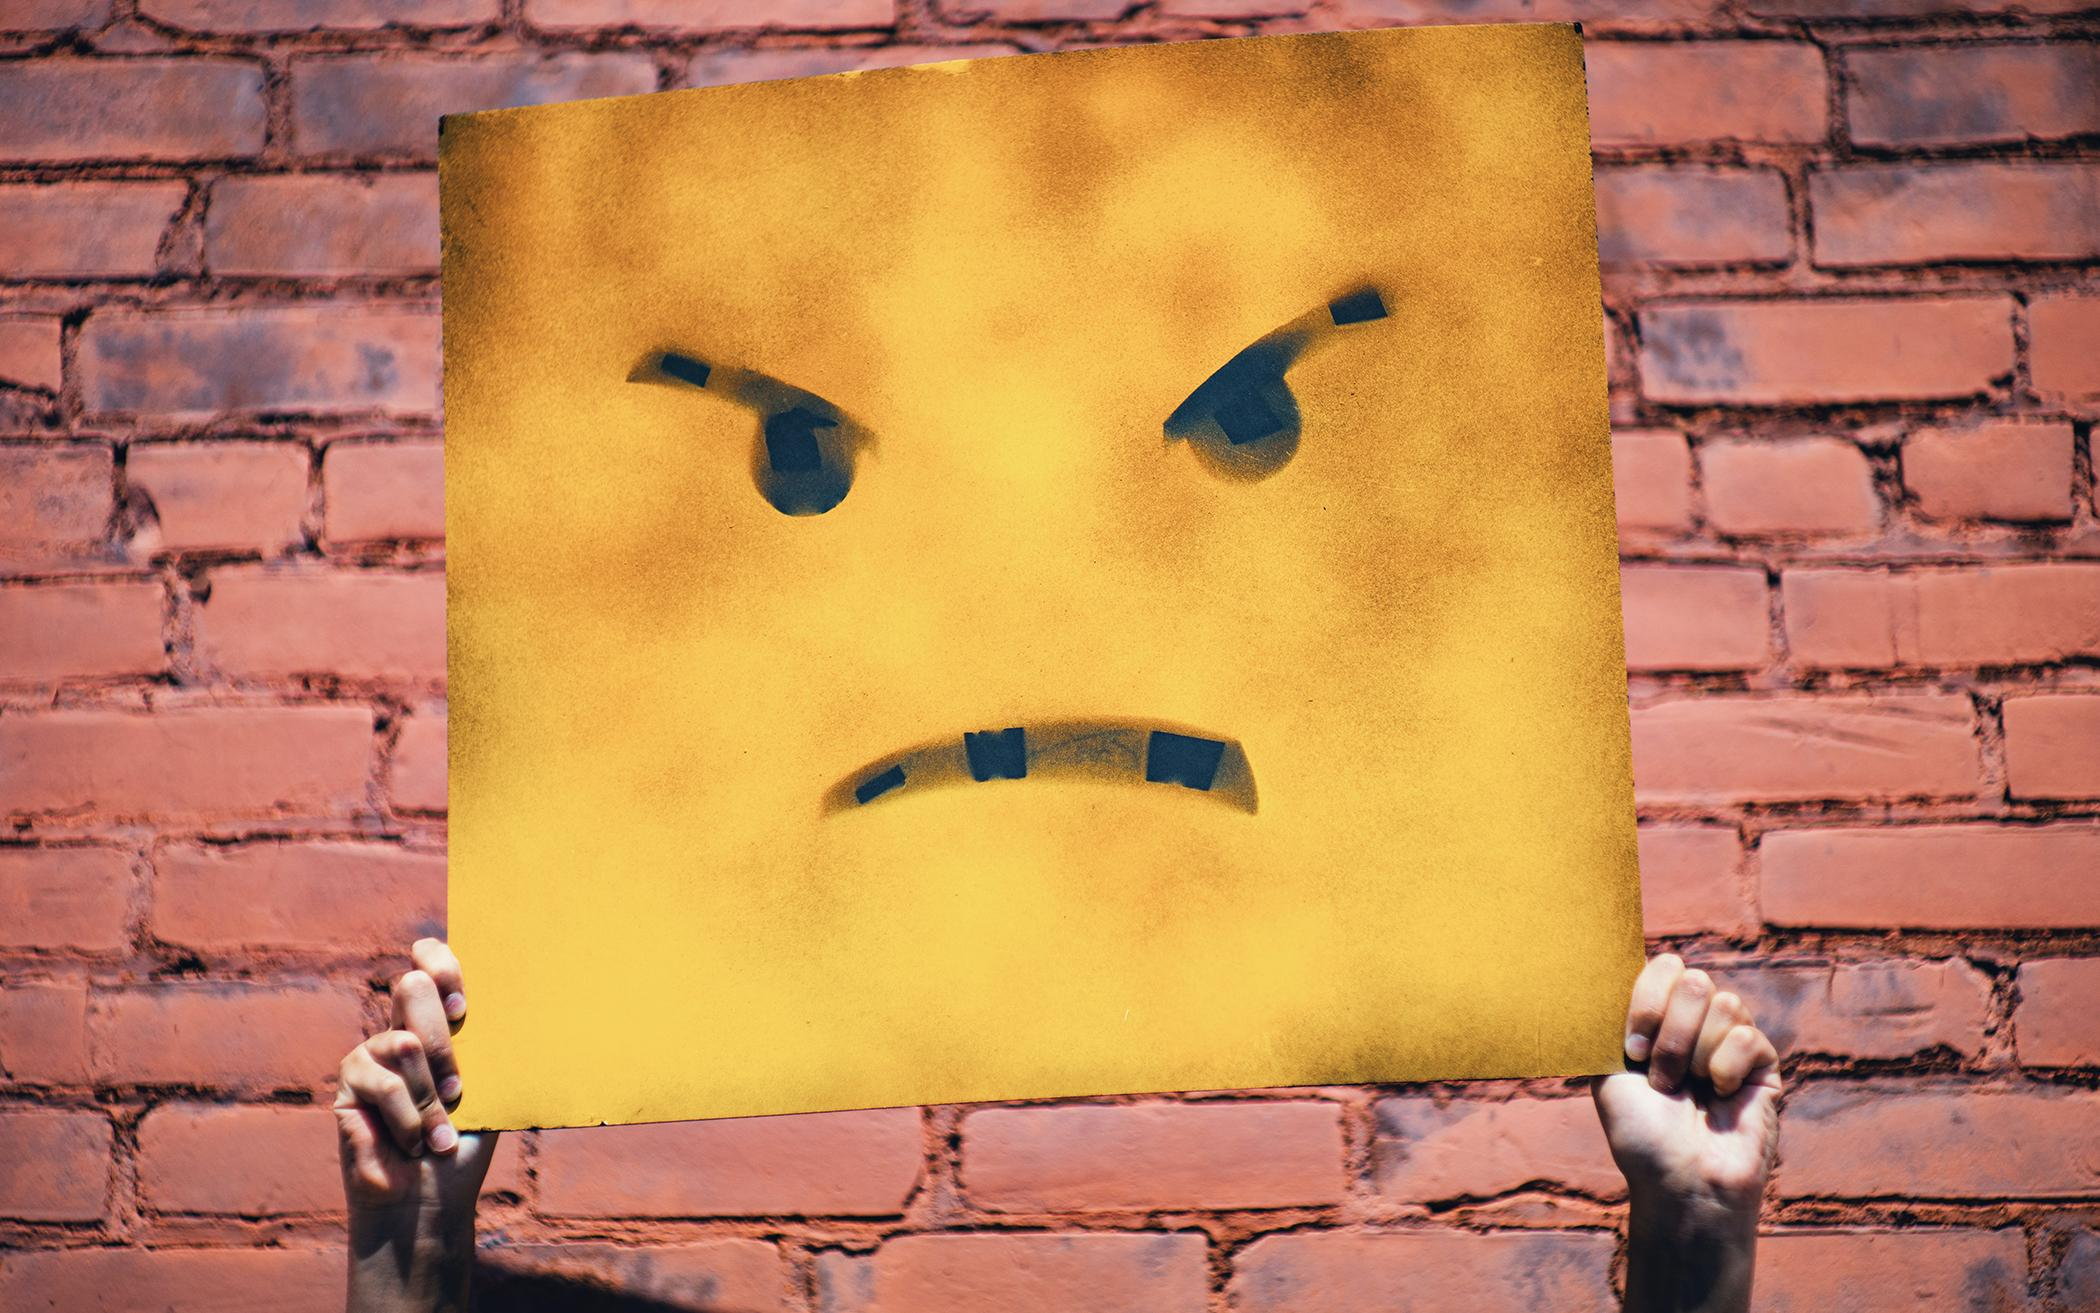 Managing Anger in Troubled Times